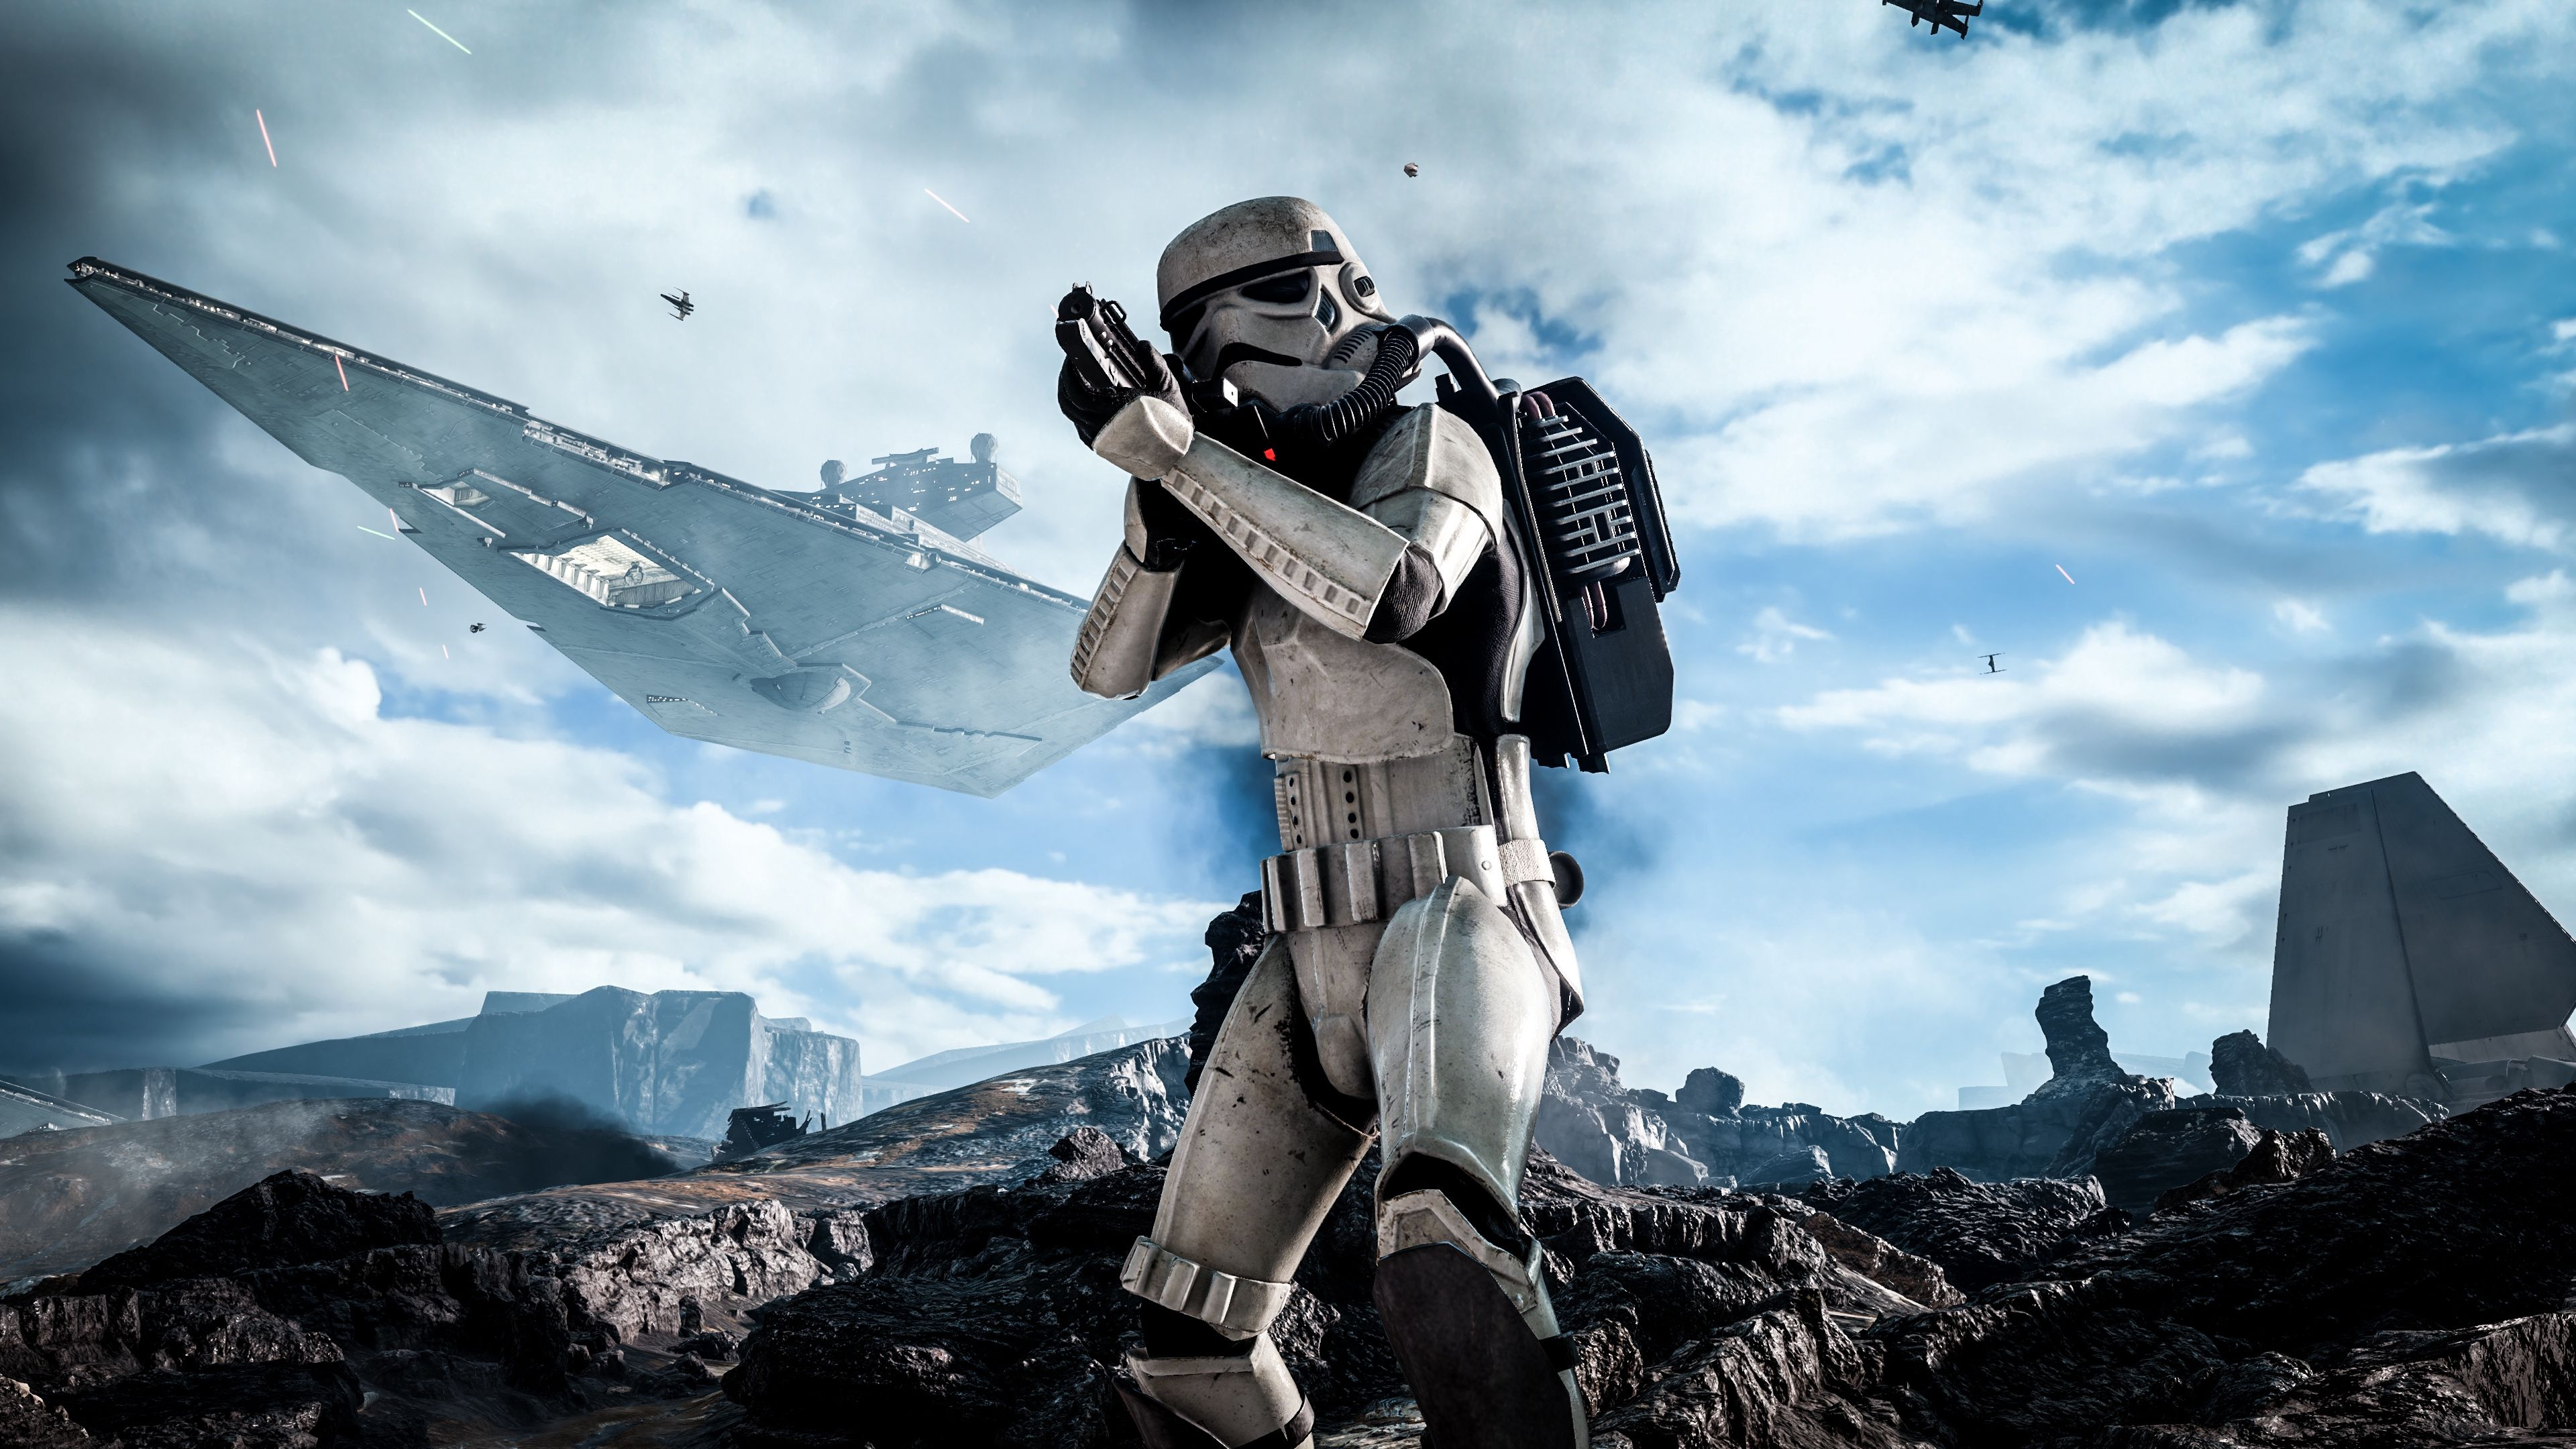 Download Wallpapers Star Wars Battlefront Electronic Star Wars Pc Background 3840x2160 Wallpaper Teahub Io